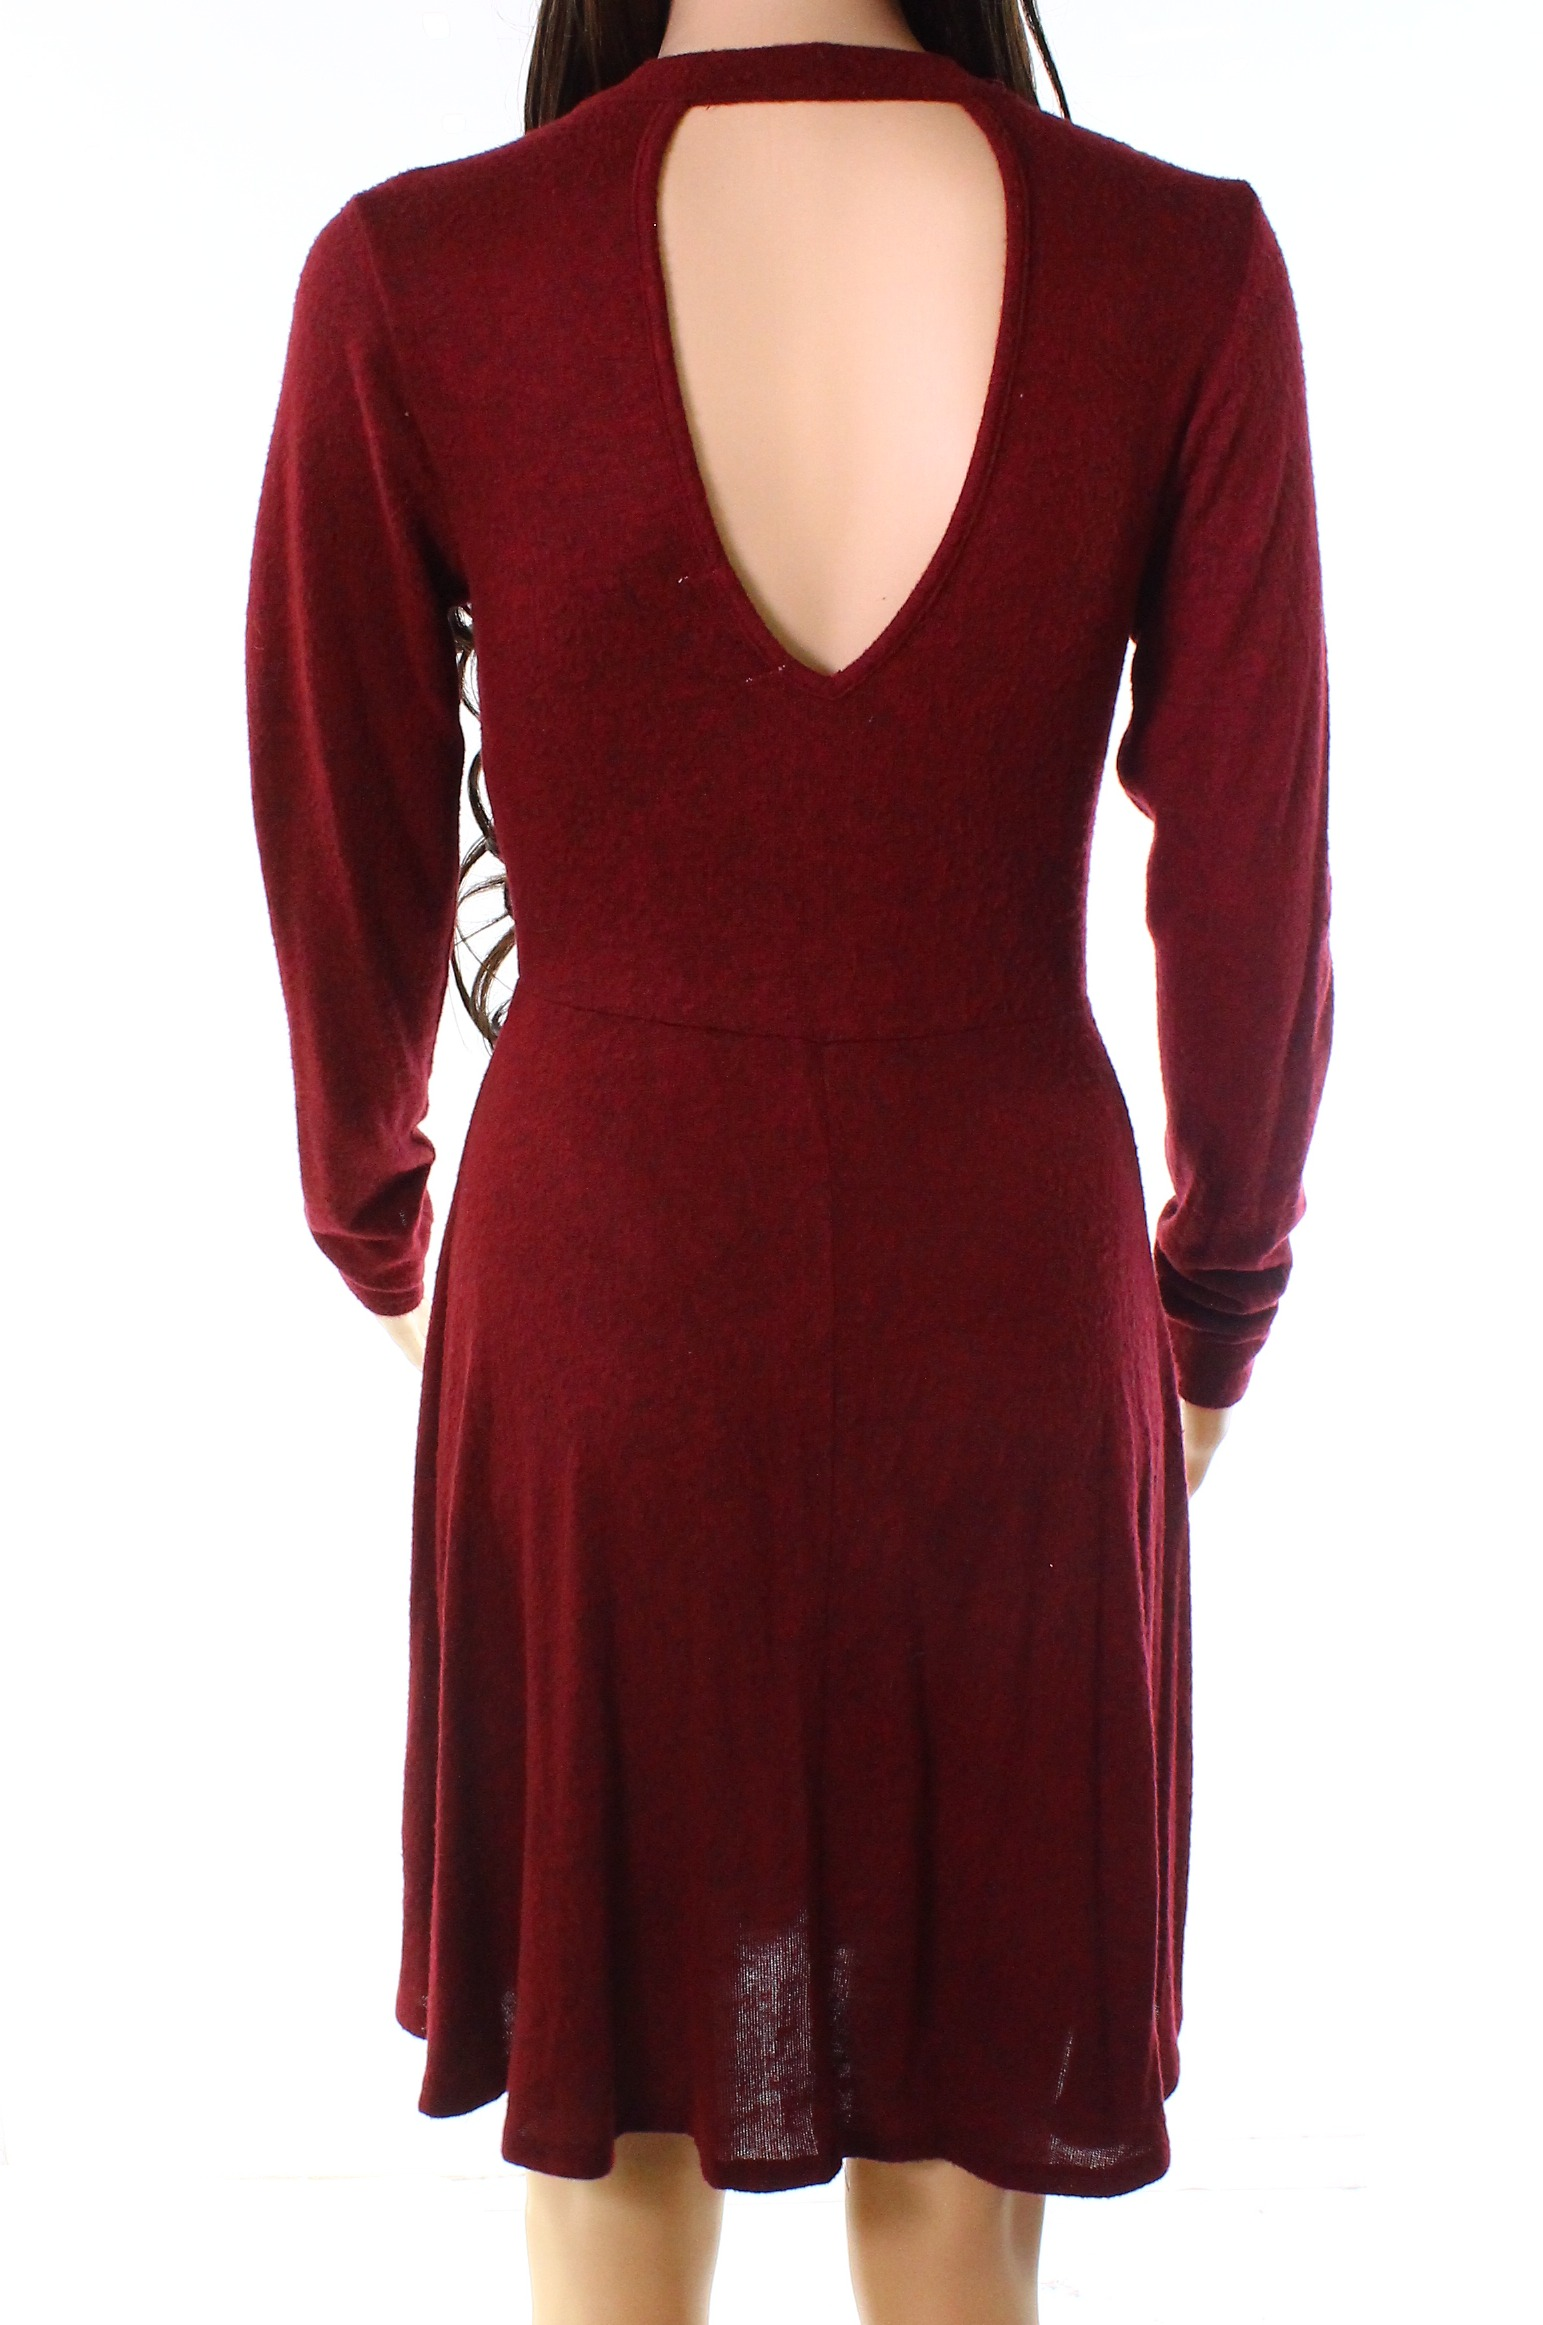 bd427d18ed0 Details about Moa Moa NEW Red Women s Size XS V-Neck Knit Stretch A-Line  Dress  42 869